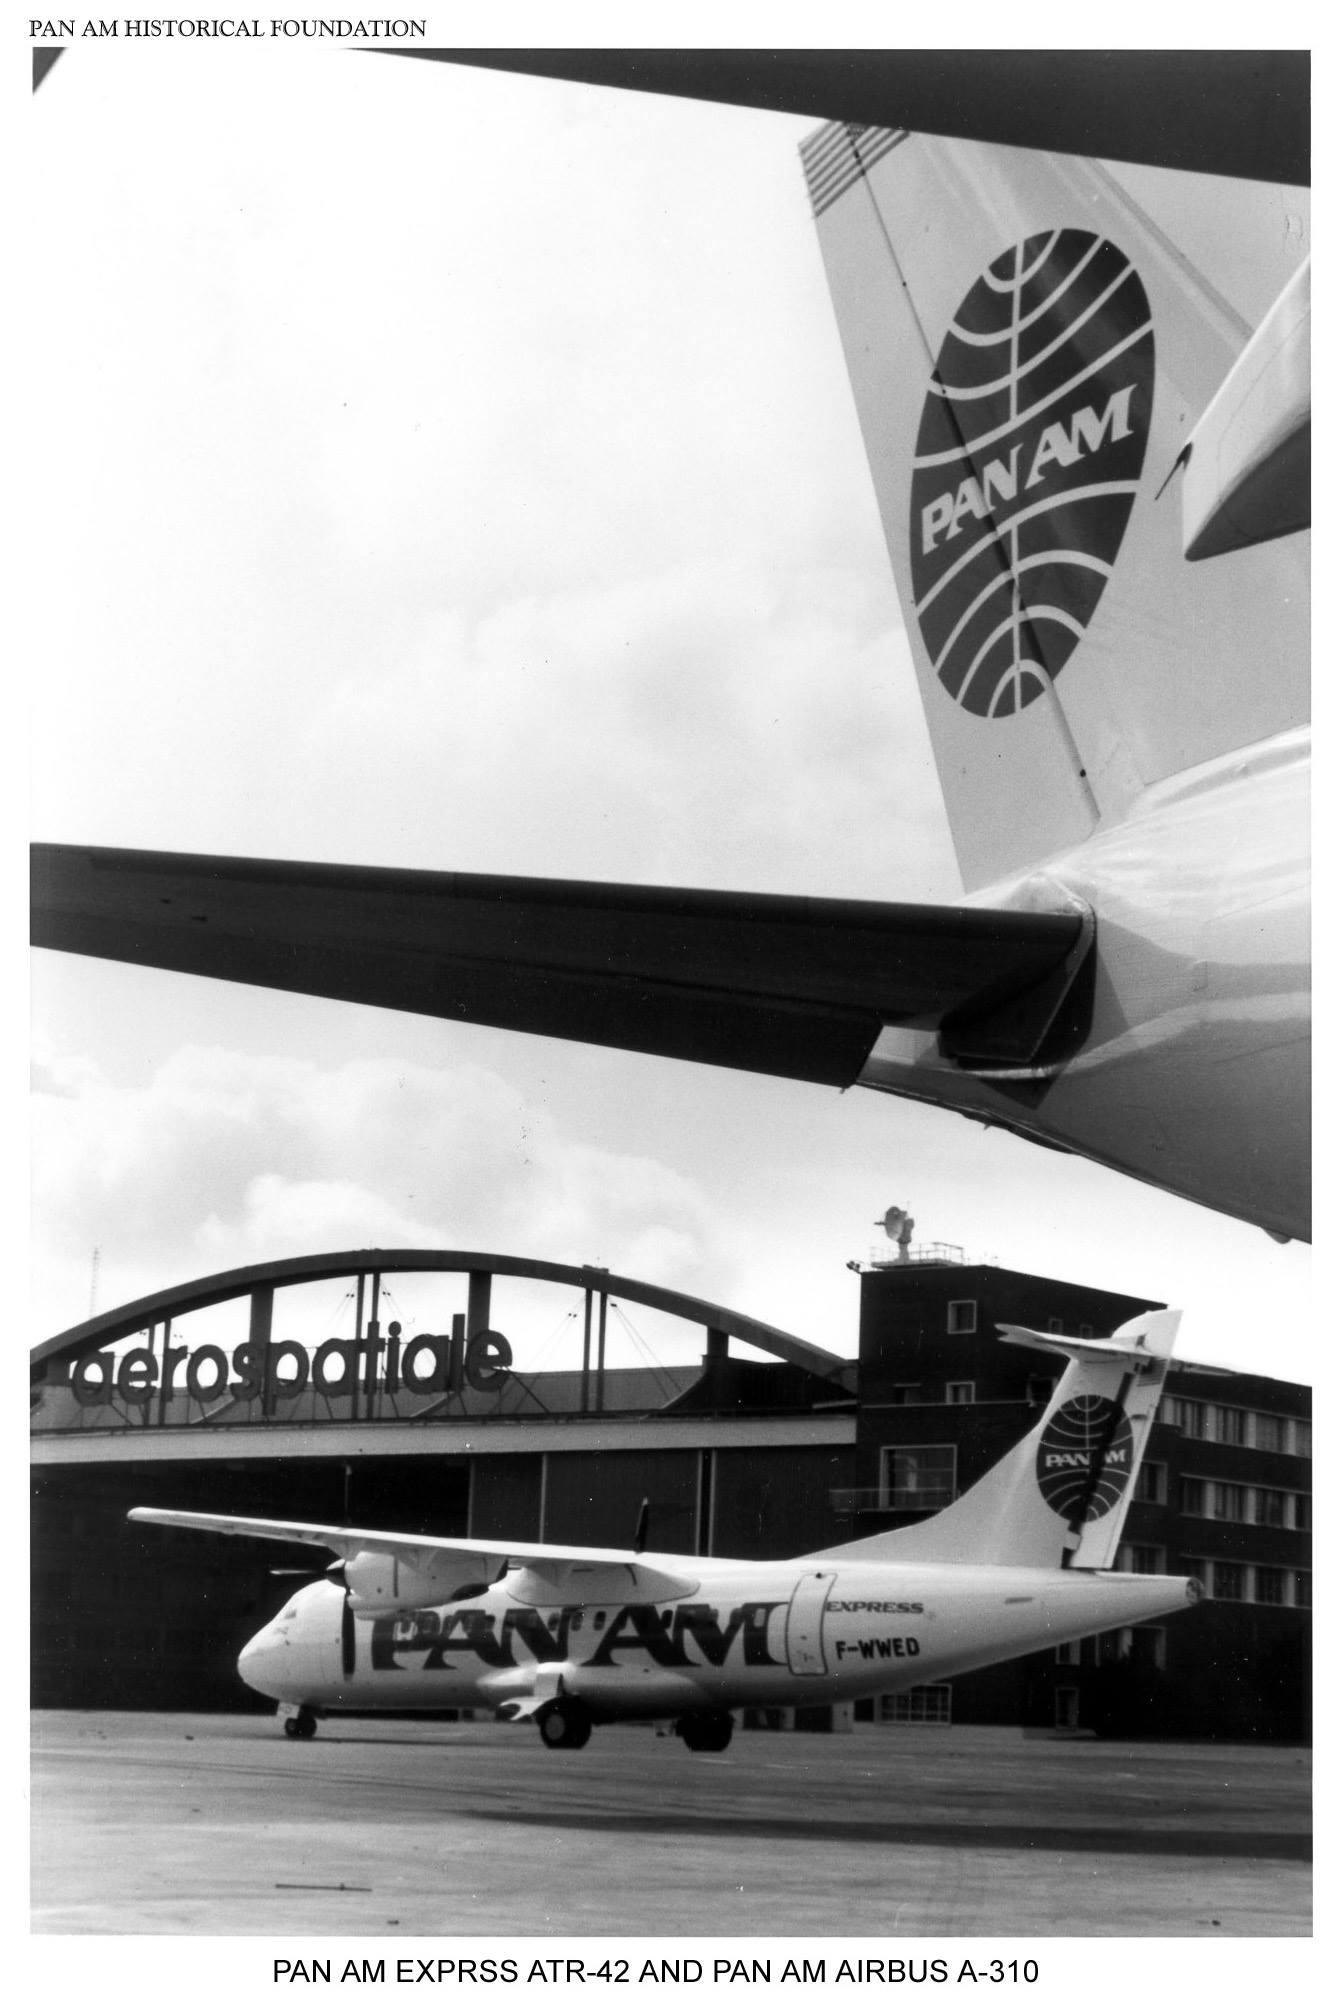 Image Caption By Luetich Clair For Pan Am Historical Foundation Pan American Vintage Airlines National Airlines